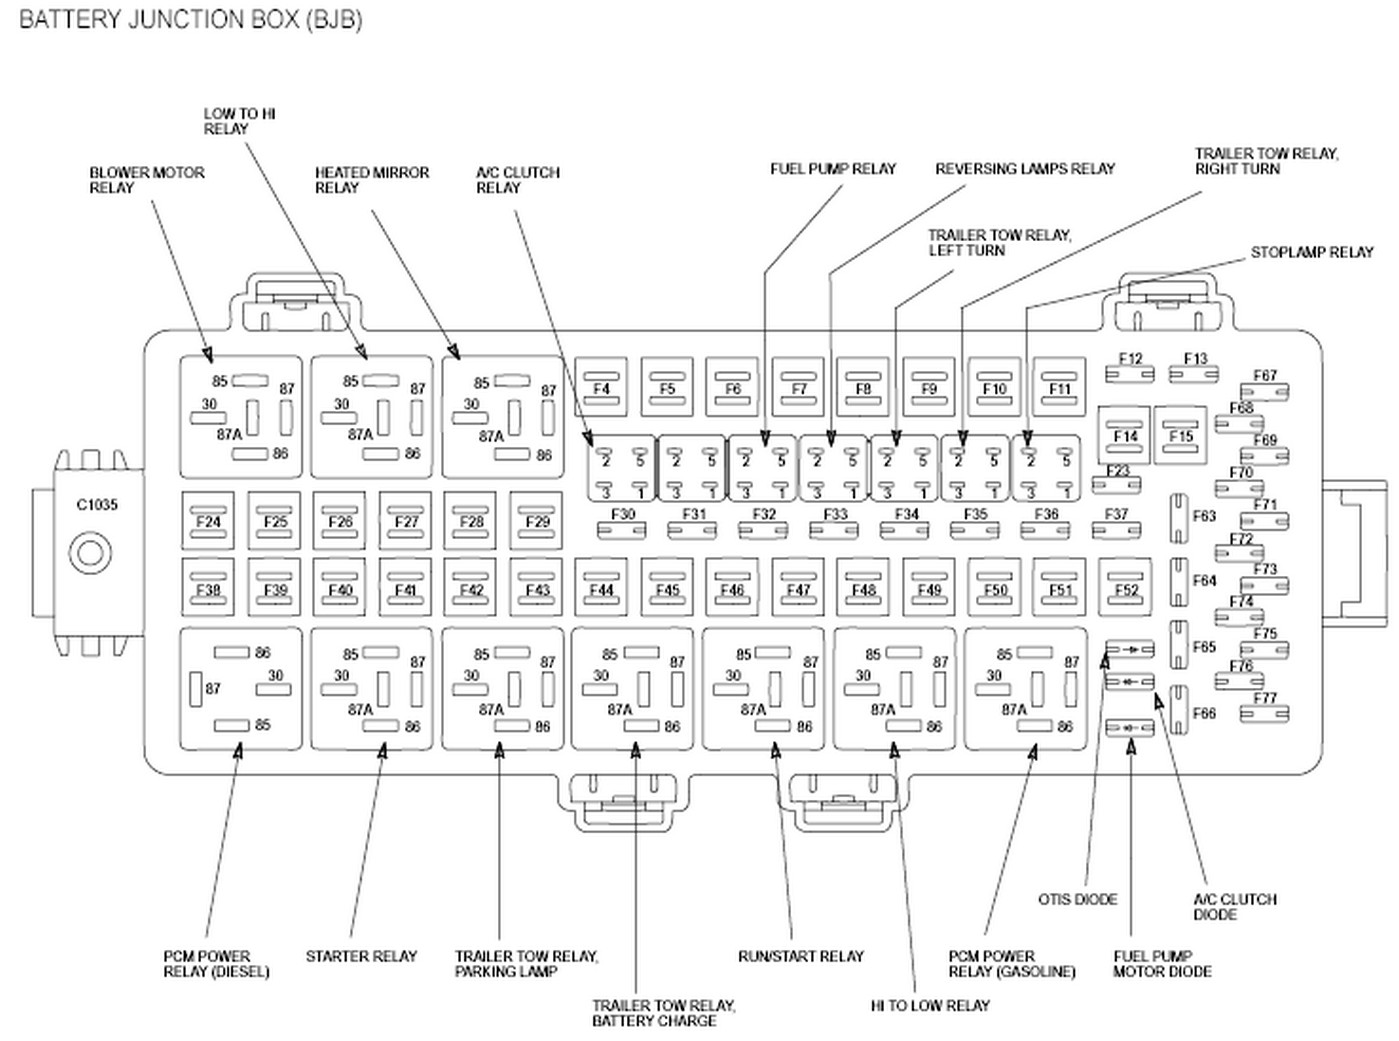 2011 ford f250 fuse box diagram Zoinyhu 2012 f250 fuse box location 2009 ford fusion fuse box diagram 1997 f250 fuse box diagram at n-0.co